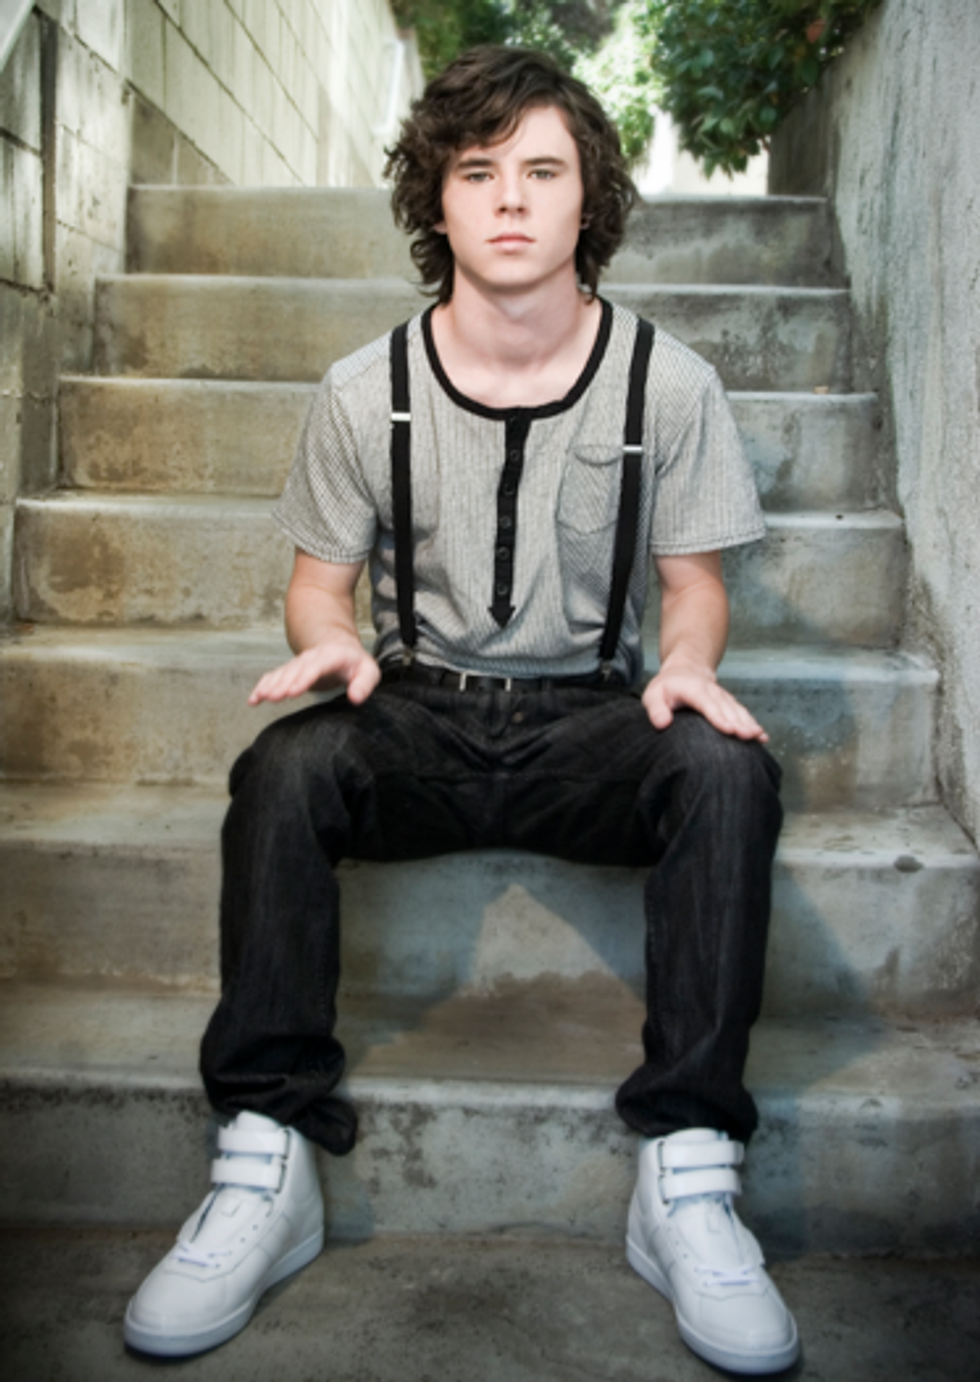 A Quick Chit-Chat With Charlie McDermott